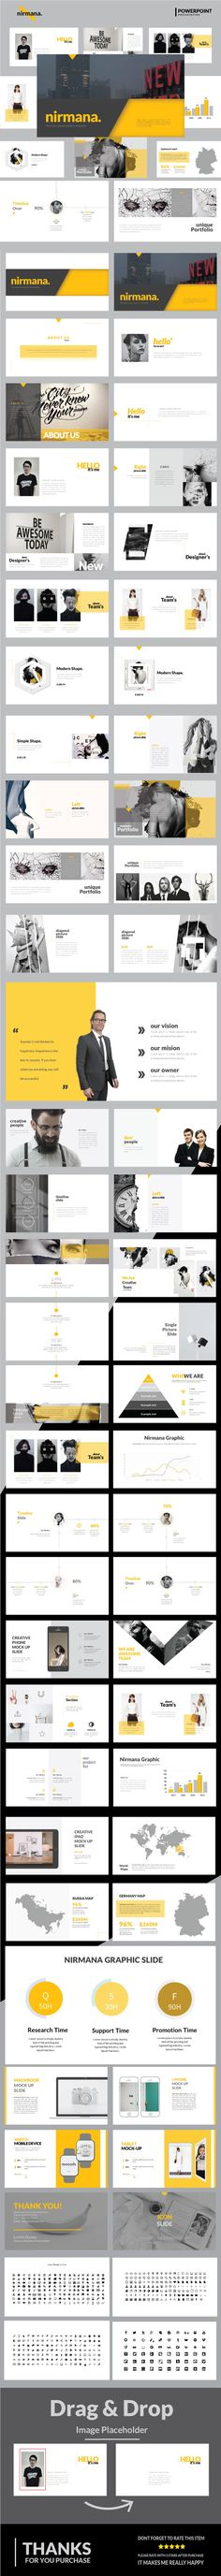 23 best business presentation templates images on pinterest nirmana keynote business presentation templates keynote templates presentation templates download here https wajeb Images